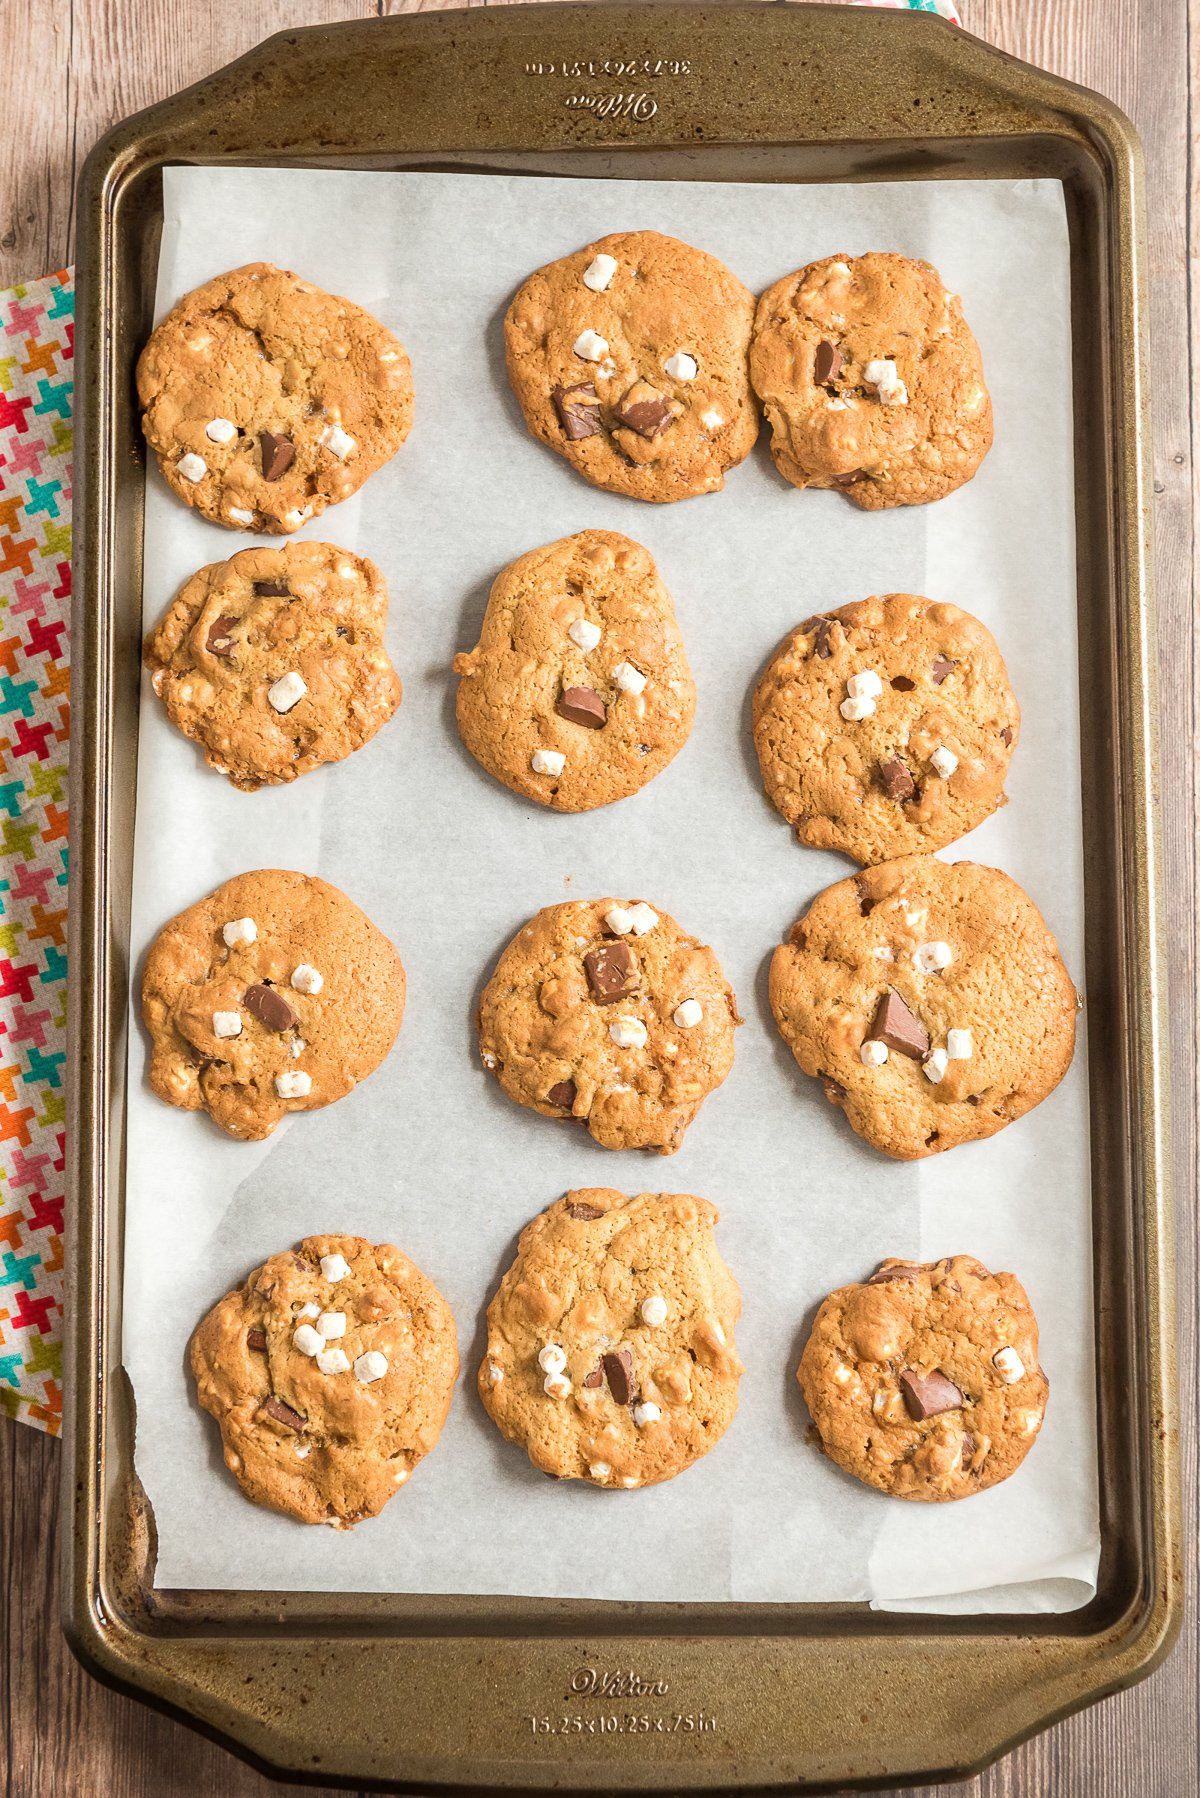 Baked cookies on a parchment lined baking sheet.